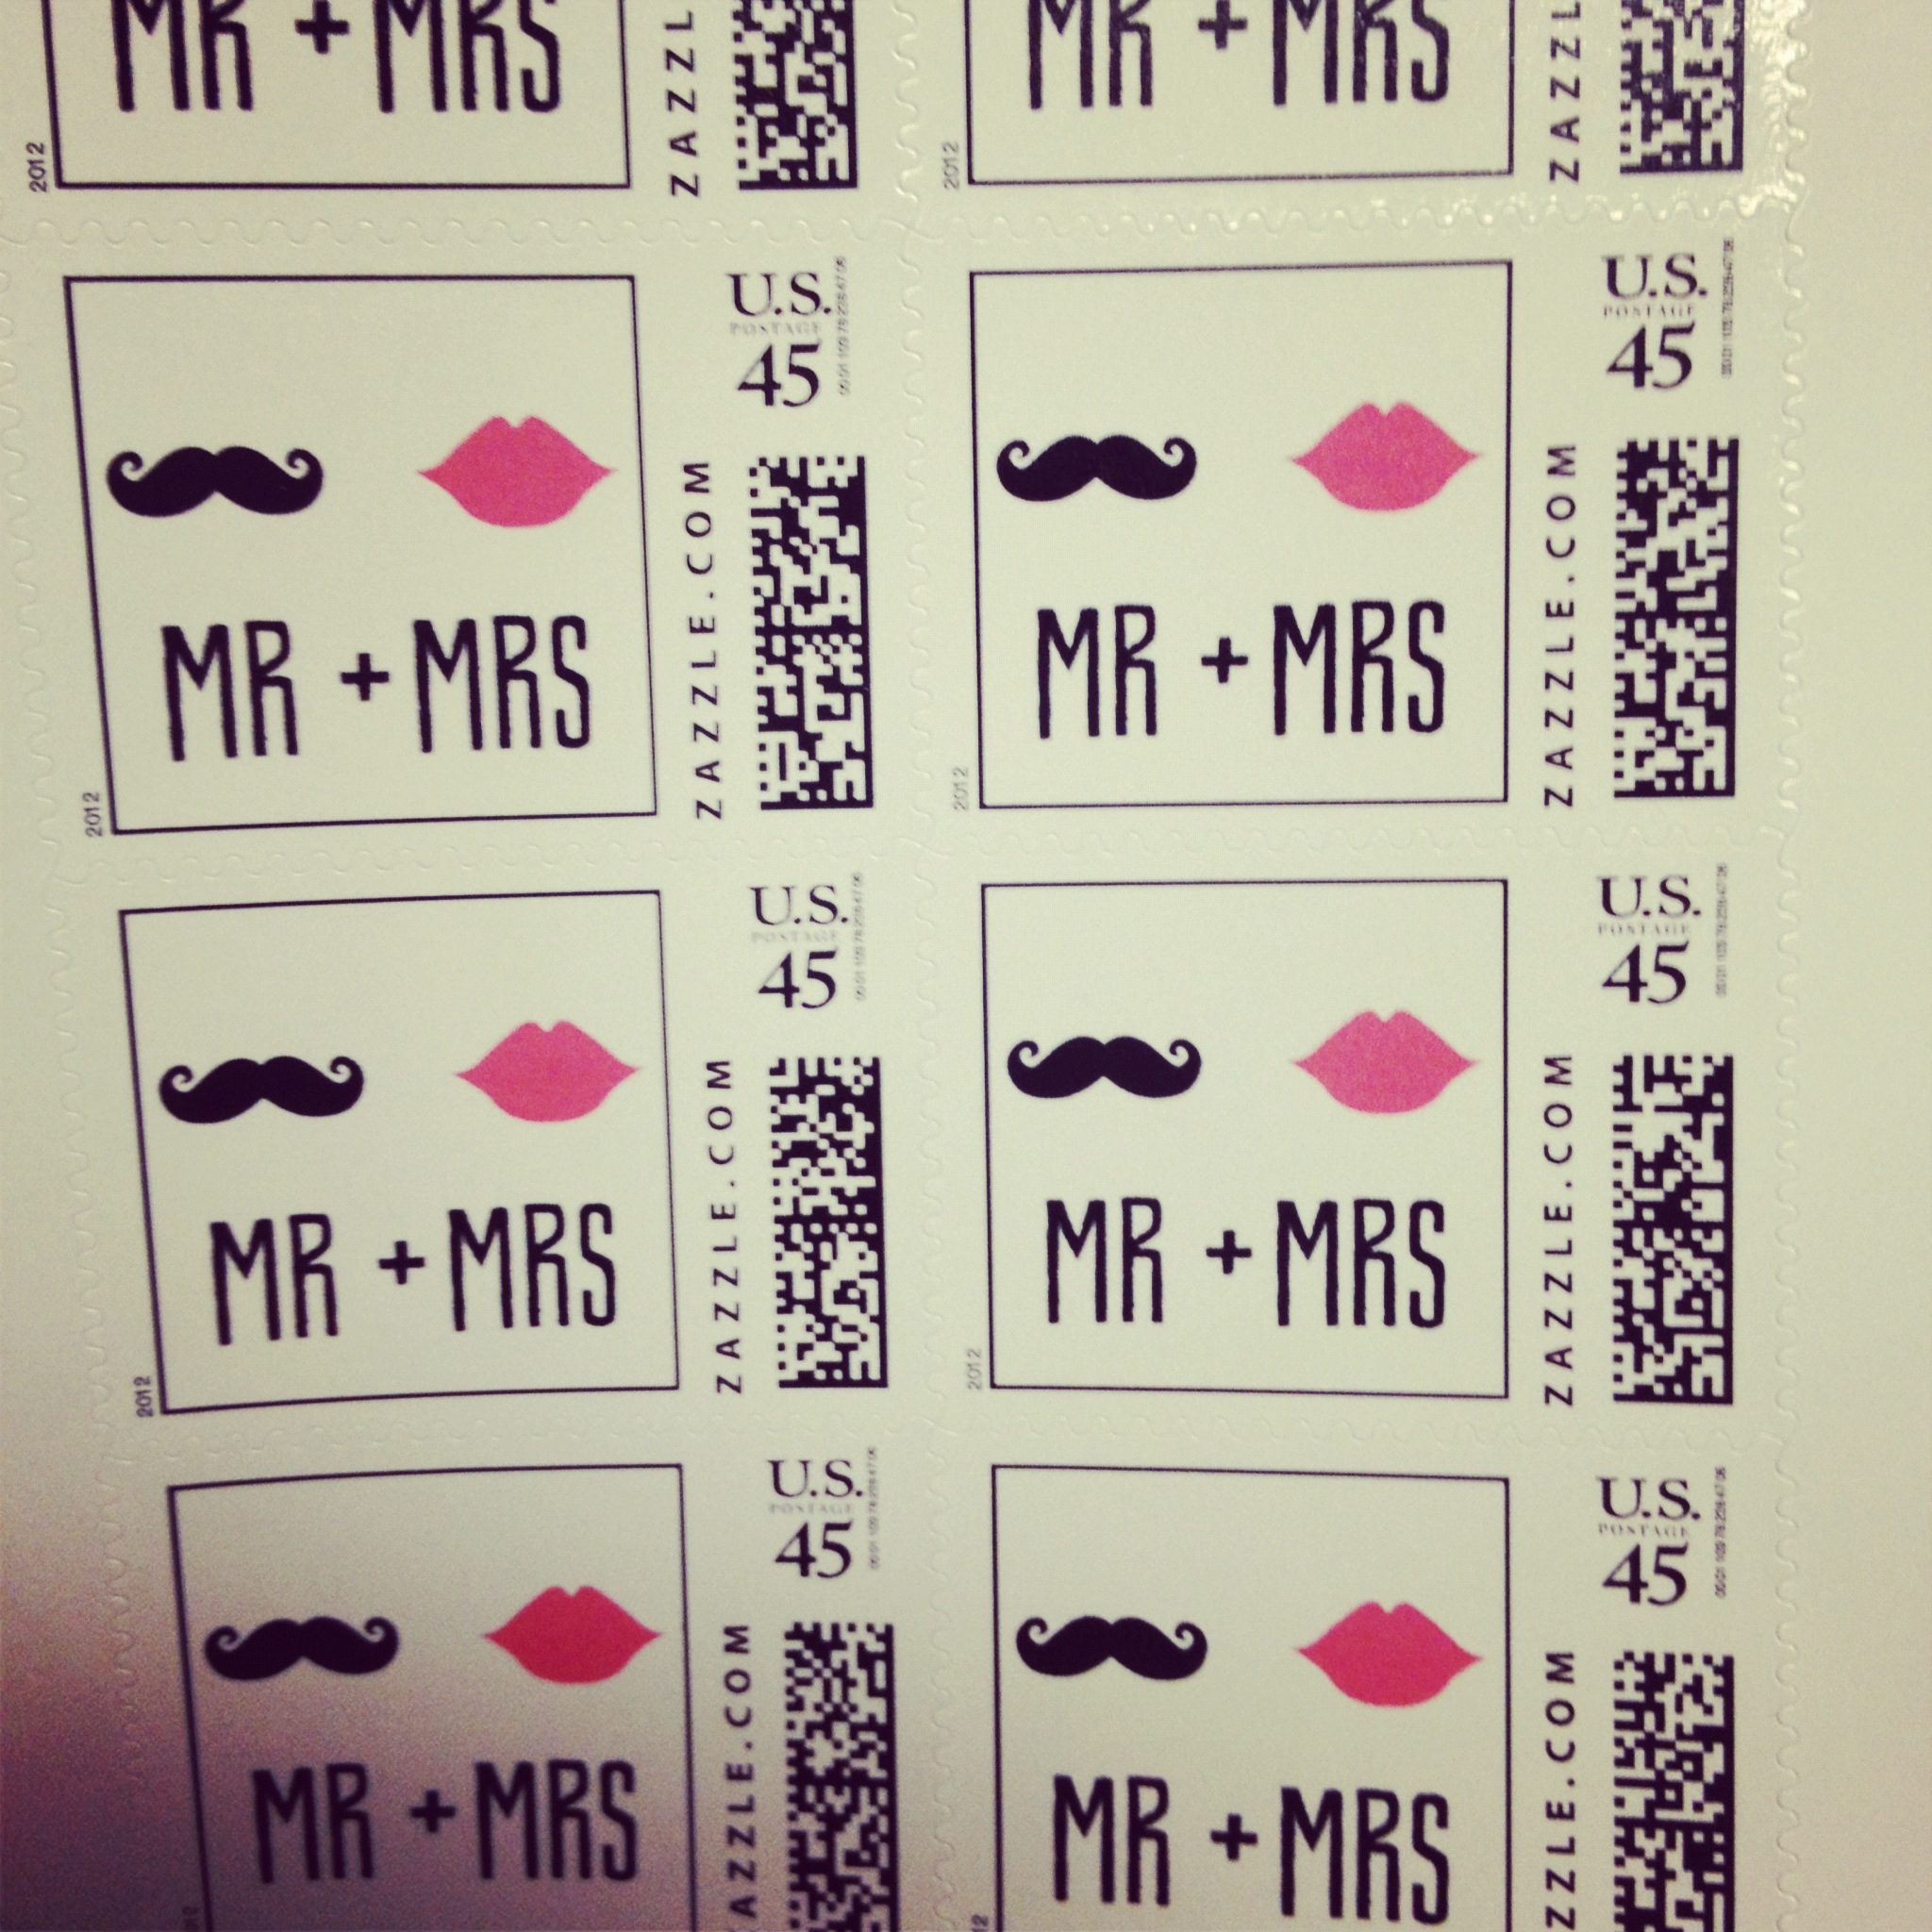 wedding invitations wedding invitation stamps I am now considering designing personalizing our own postage for our wedding invitations You can purchase a sheet of 20 stamps small size for 18 95